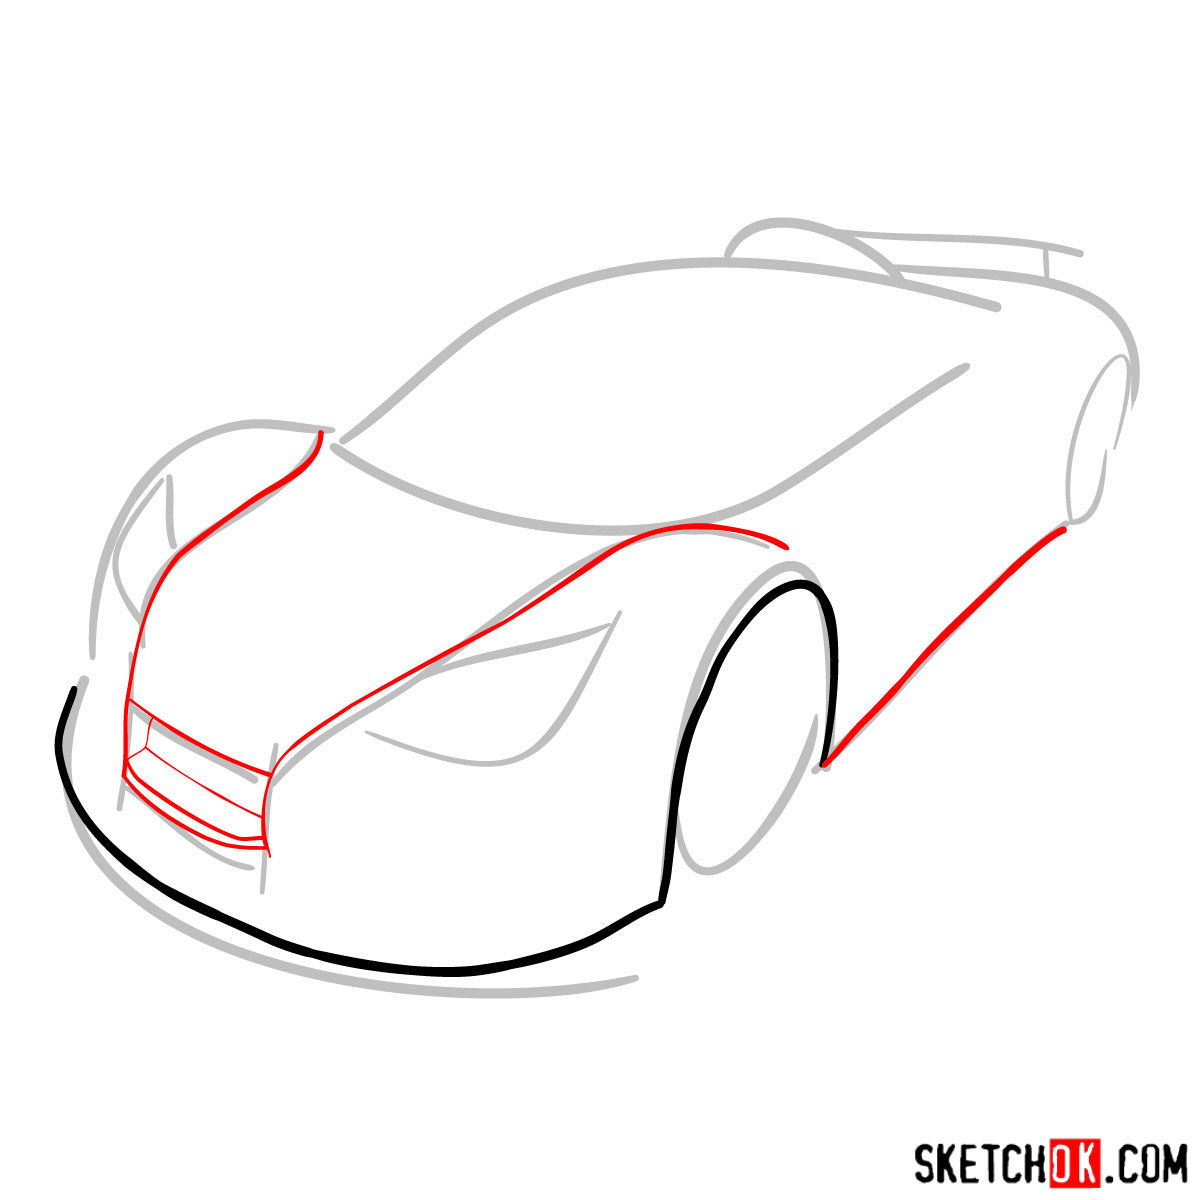 How to draw Gumpert Apolo Sport 2012 - step 03